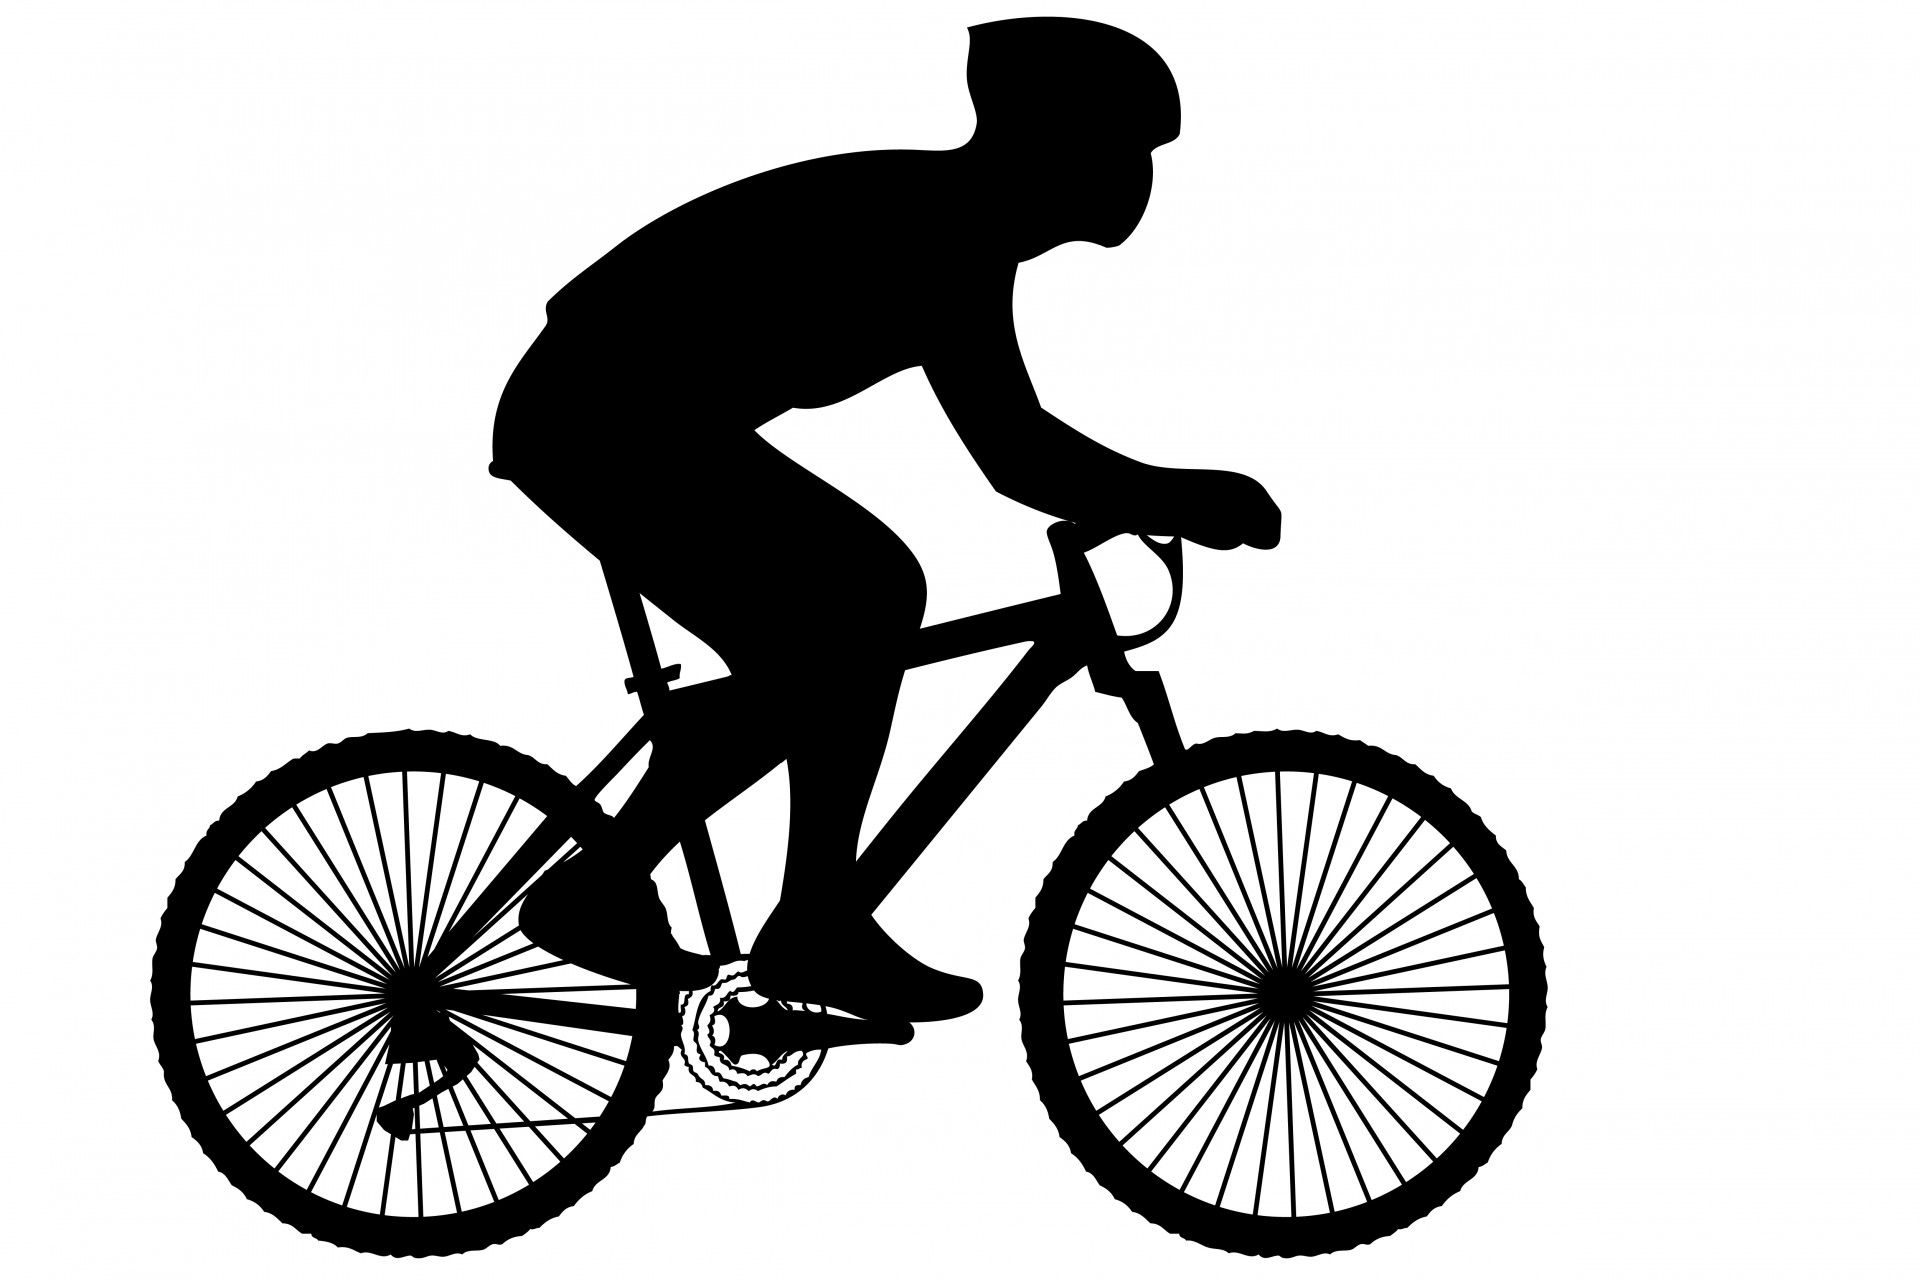 Black silhouette of a cyclist on a racing bike clipart.